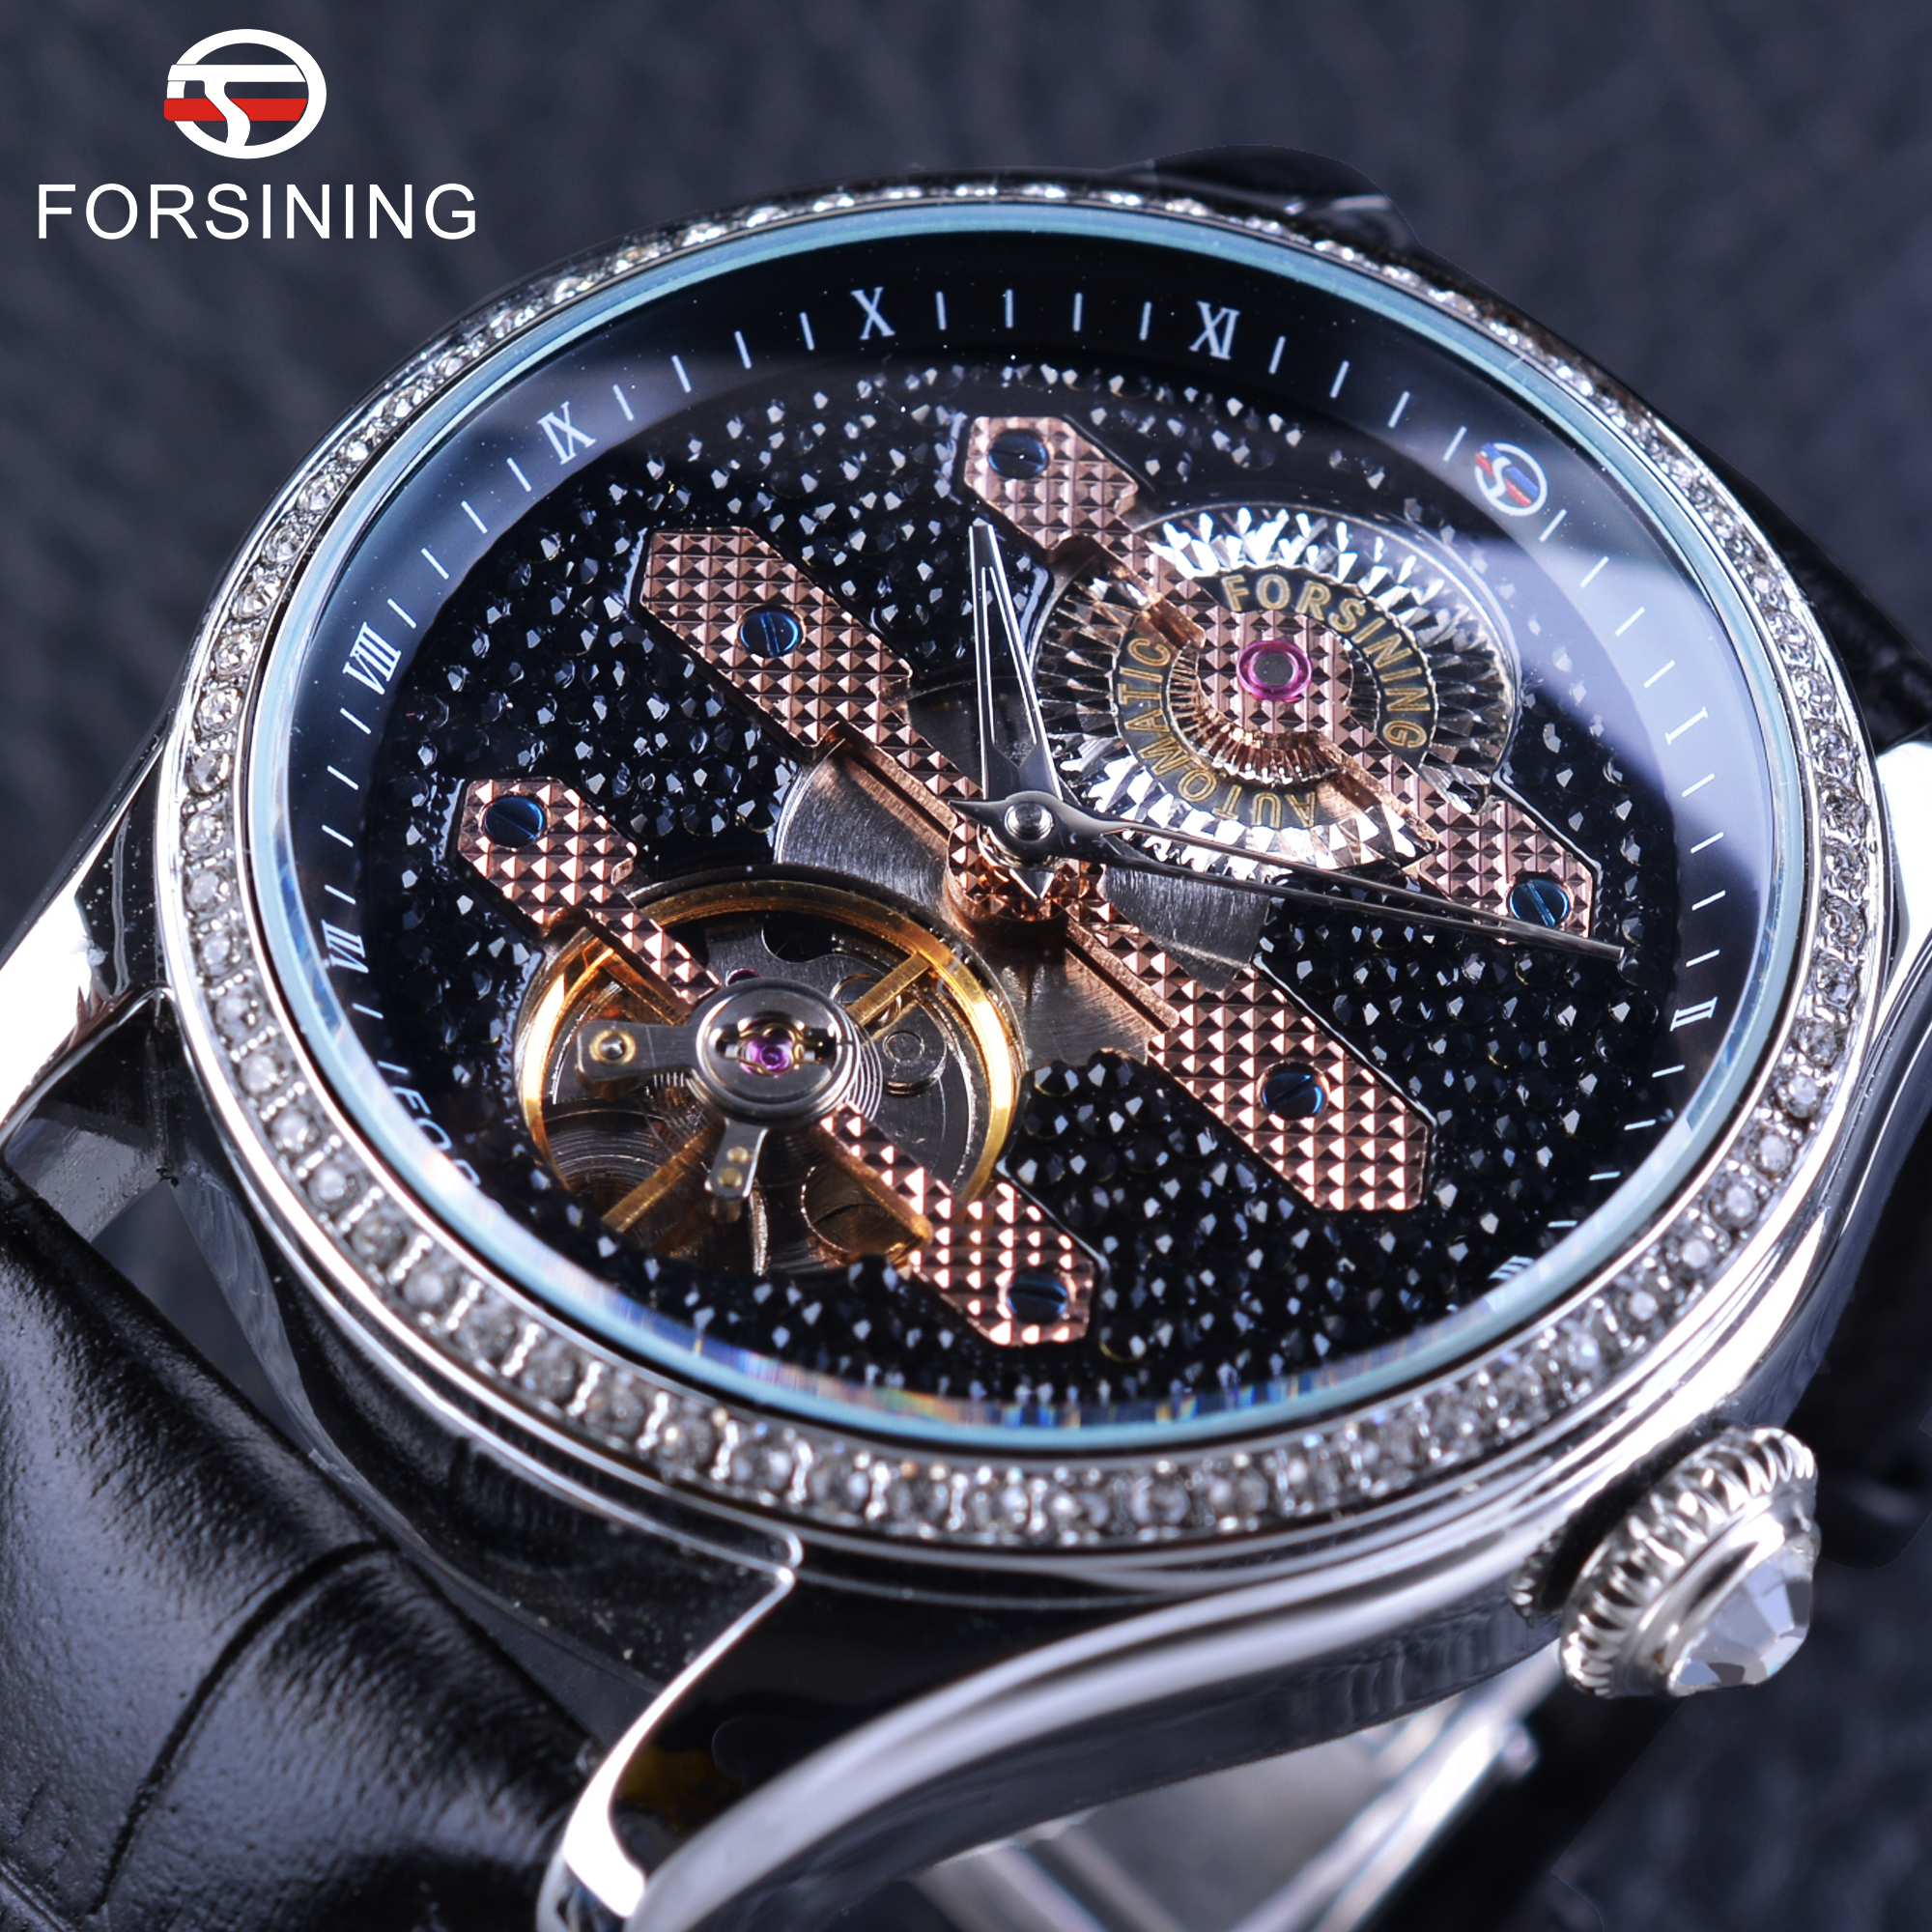 Forsining 2017 Fashion Tourbillion Diamond Dial Design Top Luxury Brand Mens Mechanical Watches Genuine Leather Strap ClockForsining 2017 Fashion Tourbillion Diamond Dial Design Top Luxury Brand Mens Mechanical Watches Genuine Leather Strap Clock